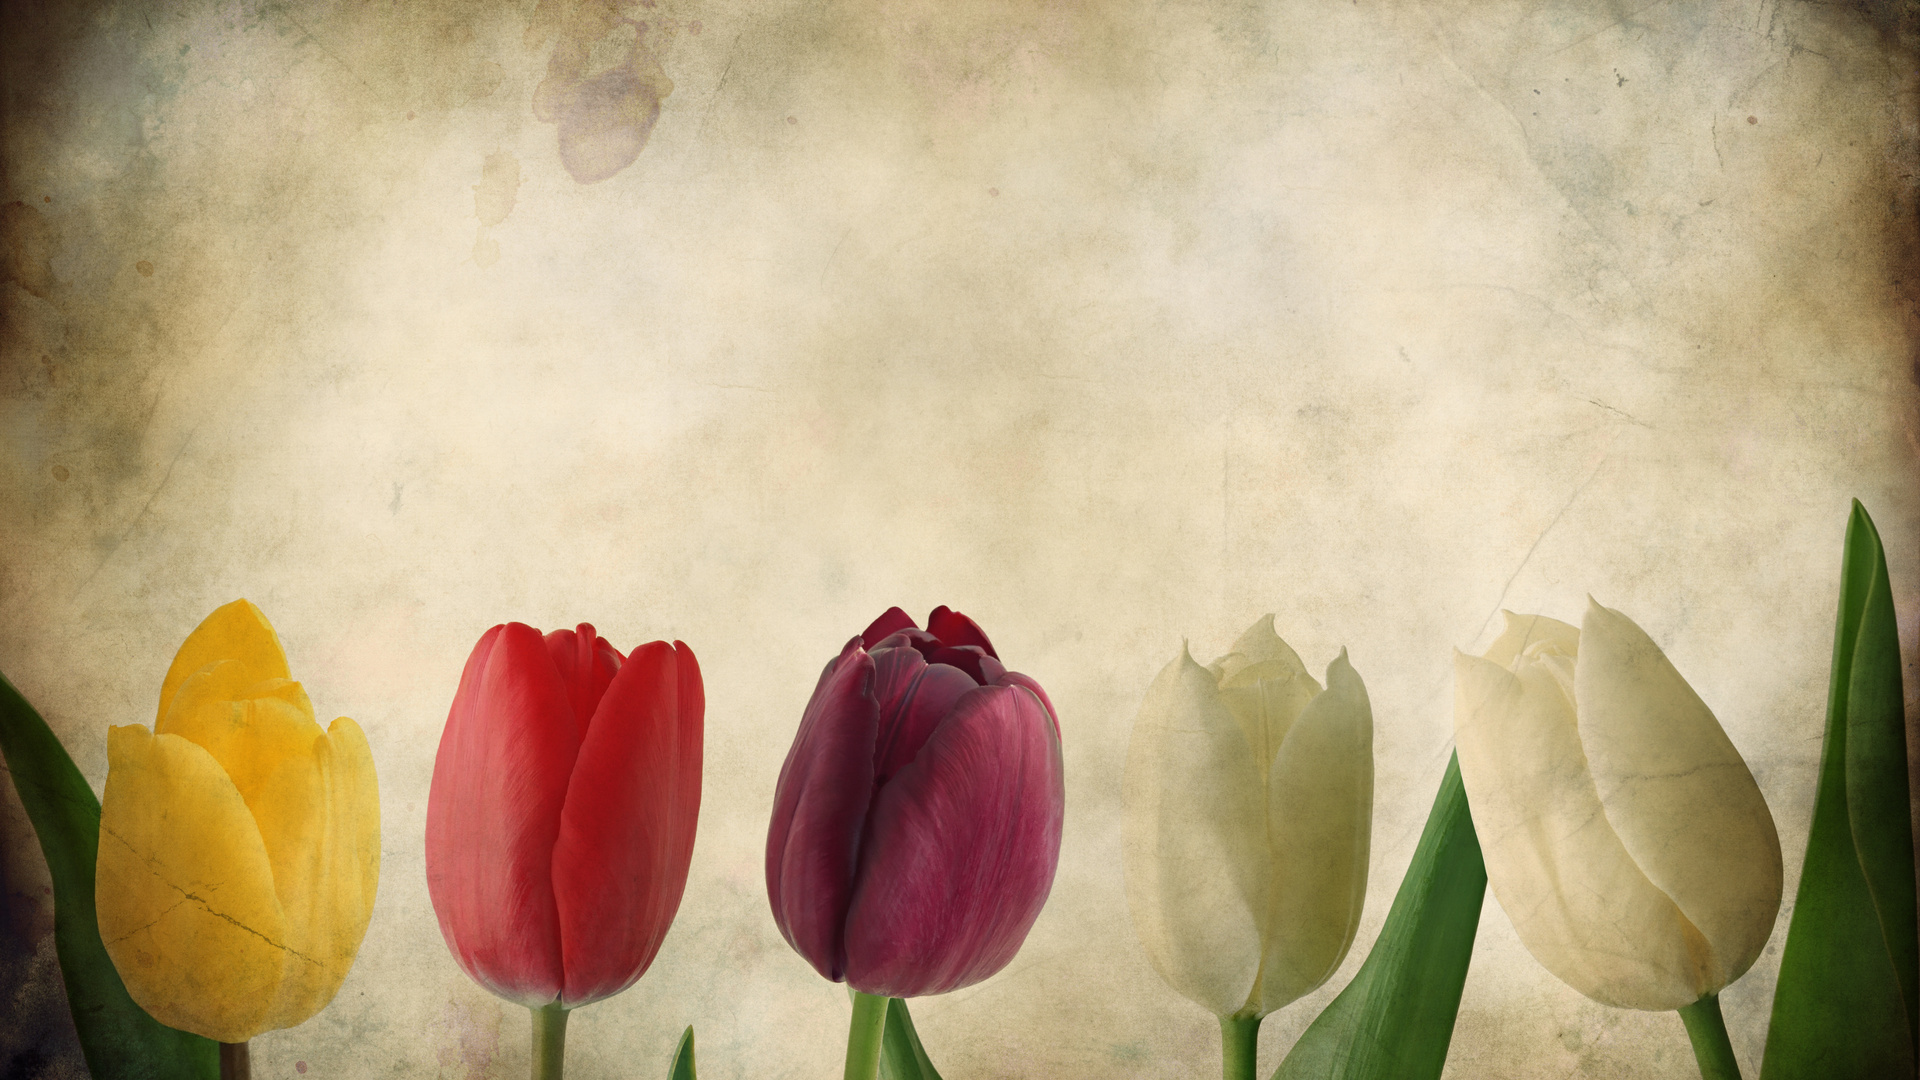 Pictures Grunge Texture Tulips 46692 wallpaper